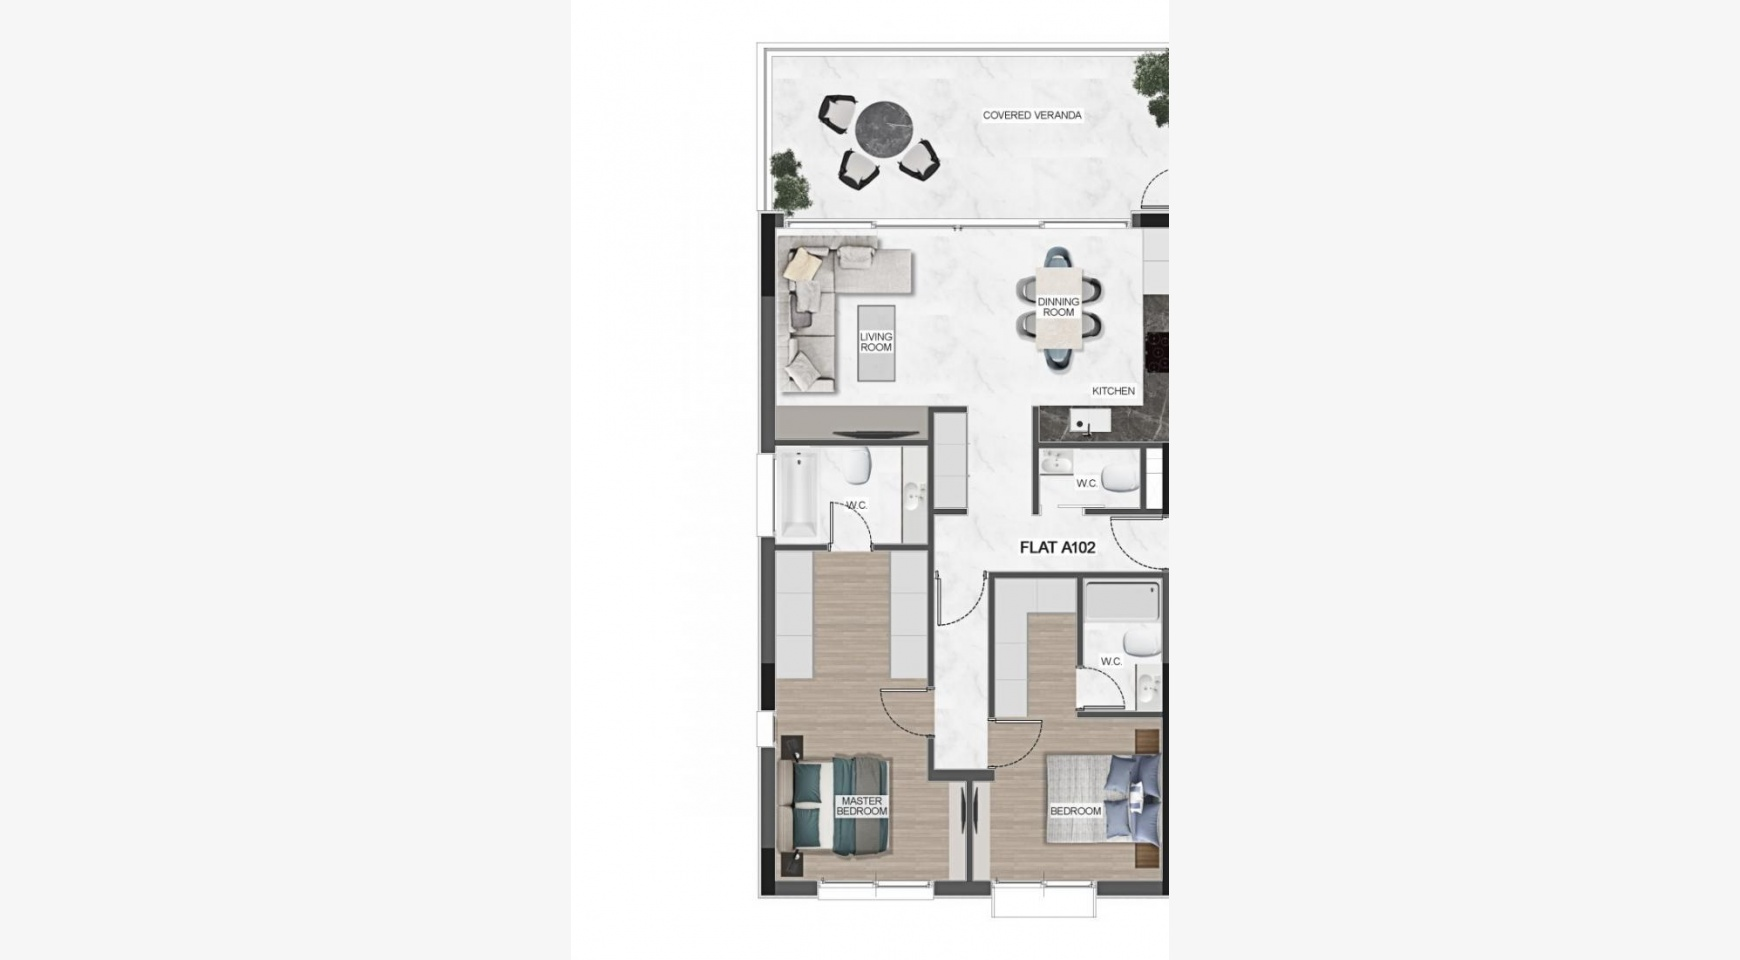 Urban City Residences, Block A. New Spacious 3 Bedroom Apartment 401 in the City Centre - 42